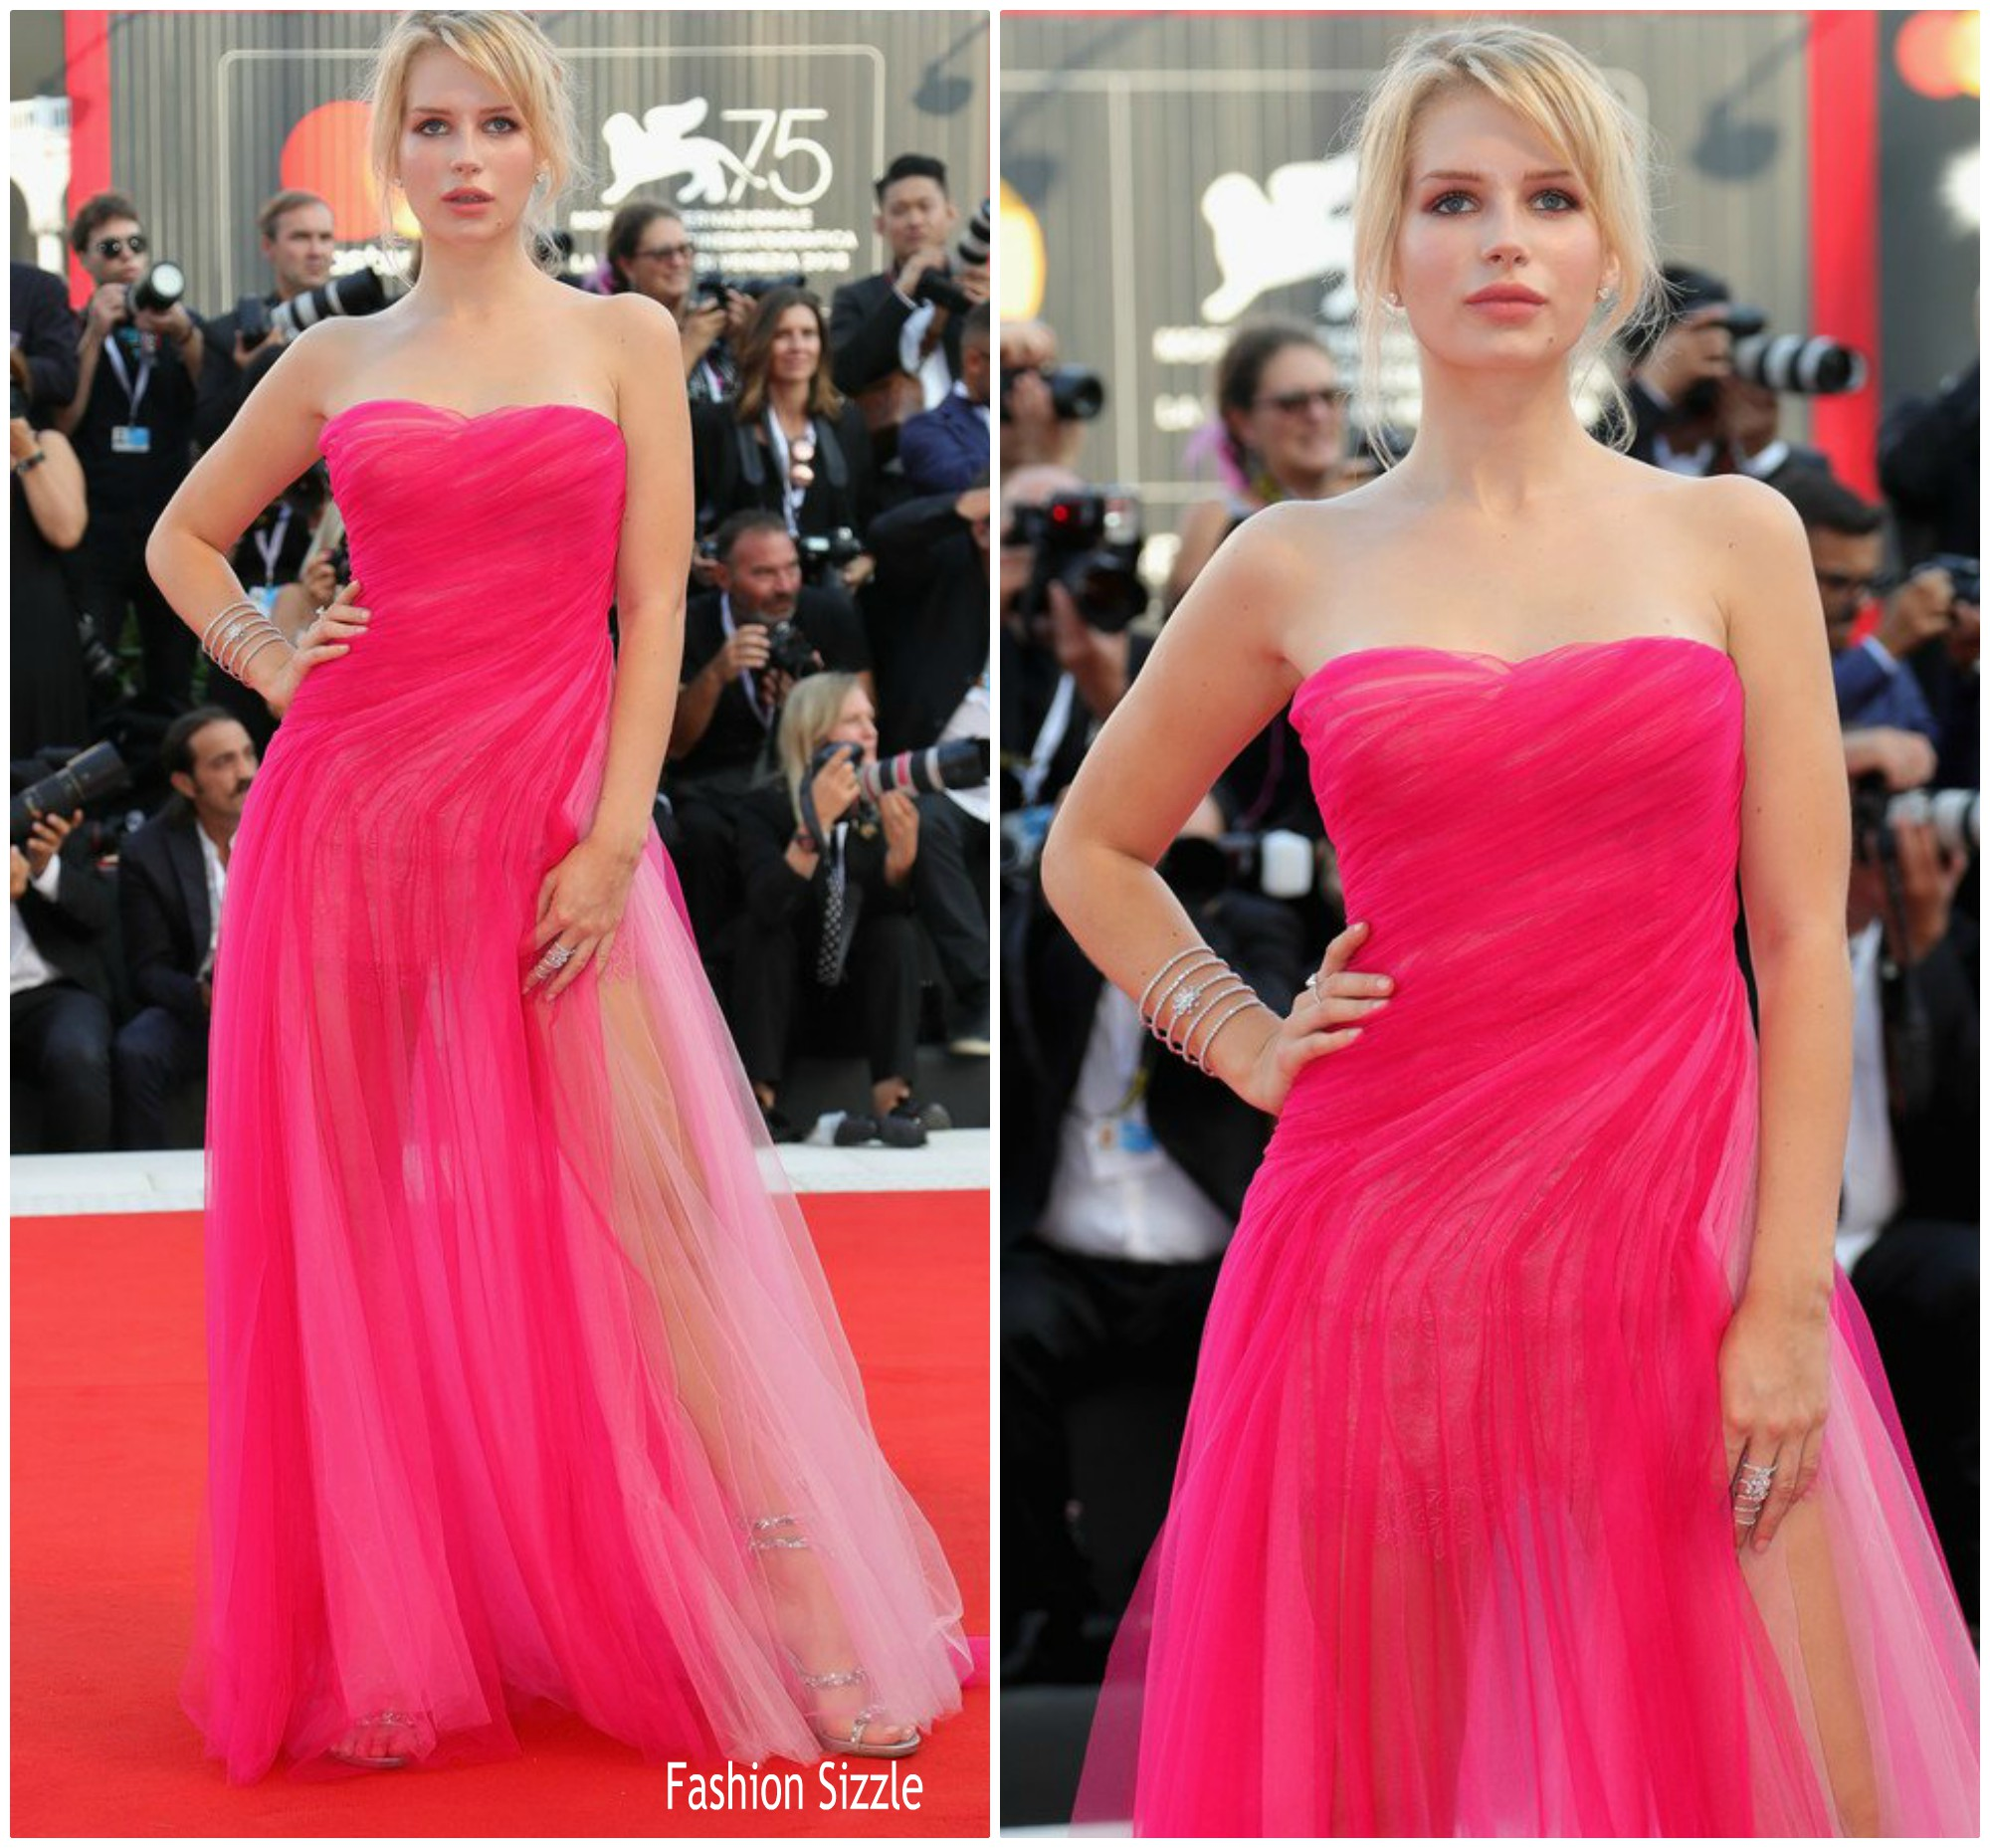 lottie-moss-in-ermano-scervino-first-man-venice-film-festival-premiere-opening-ceremony